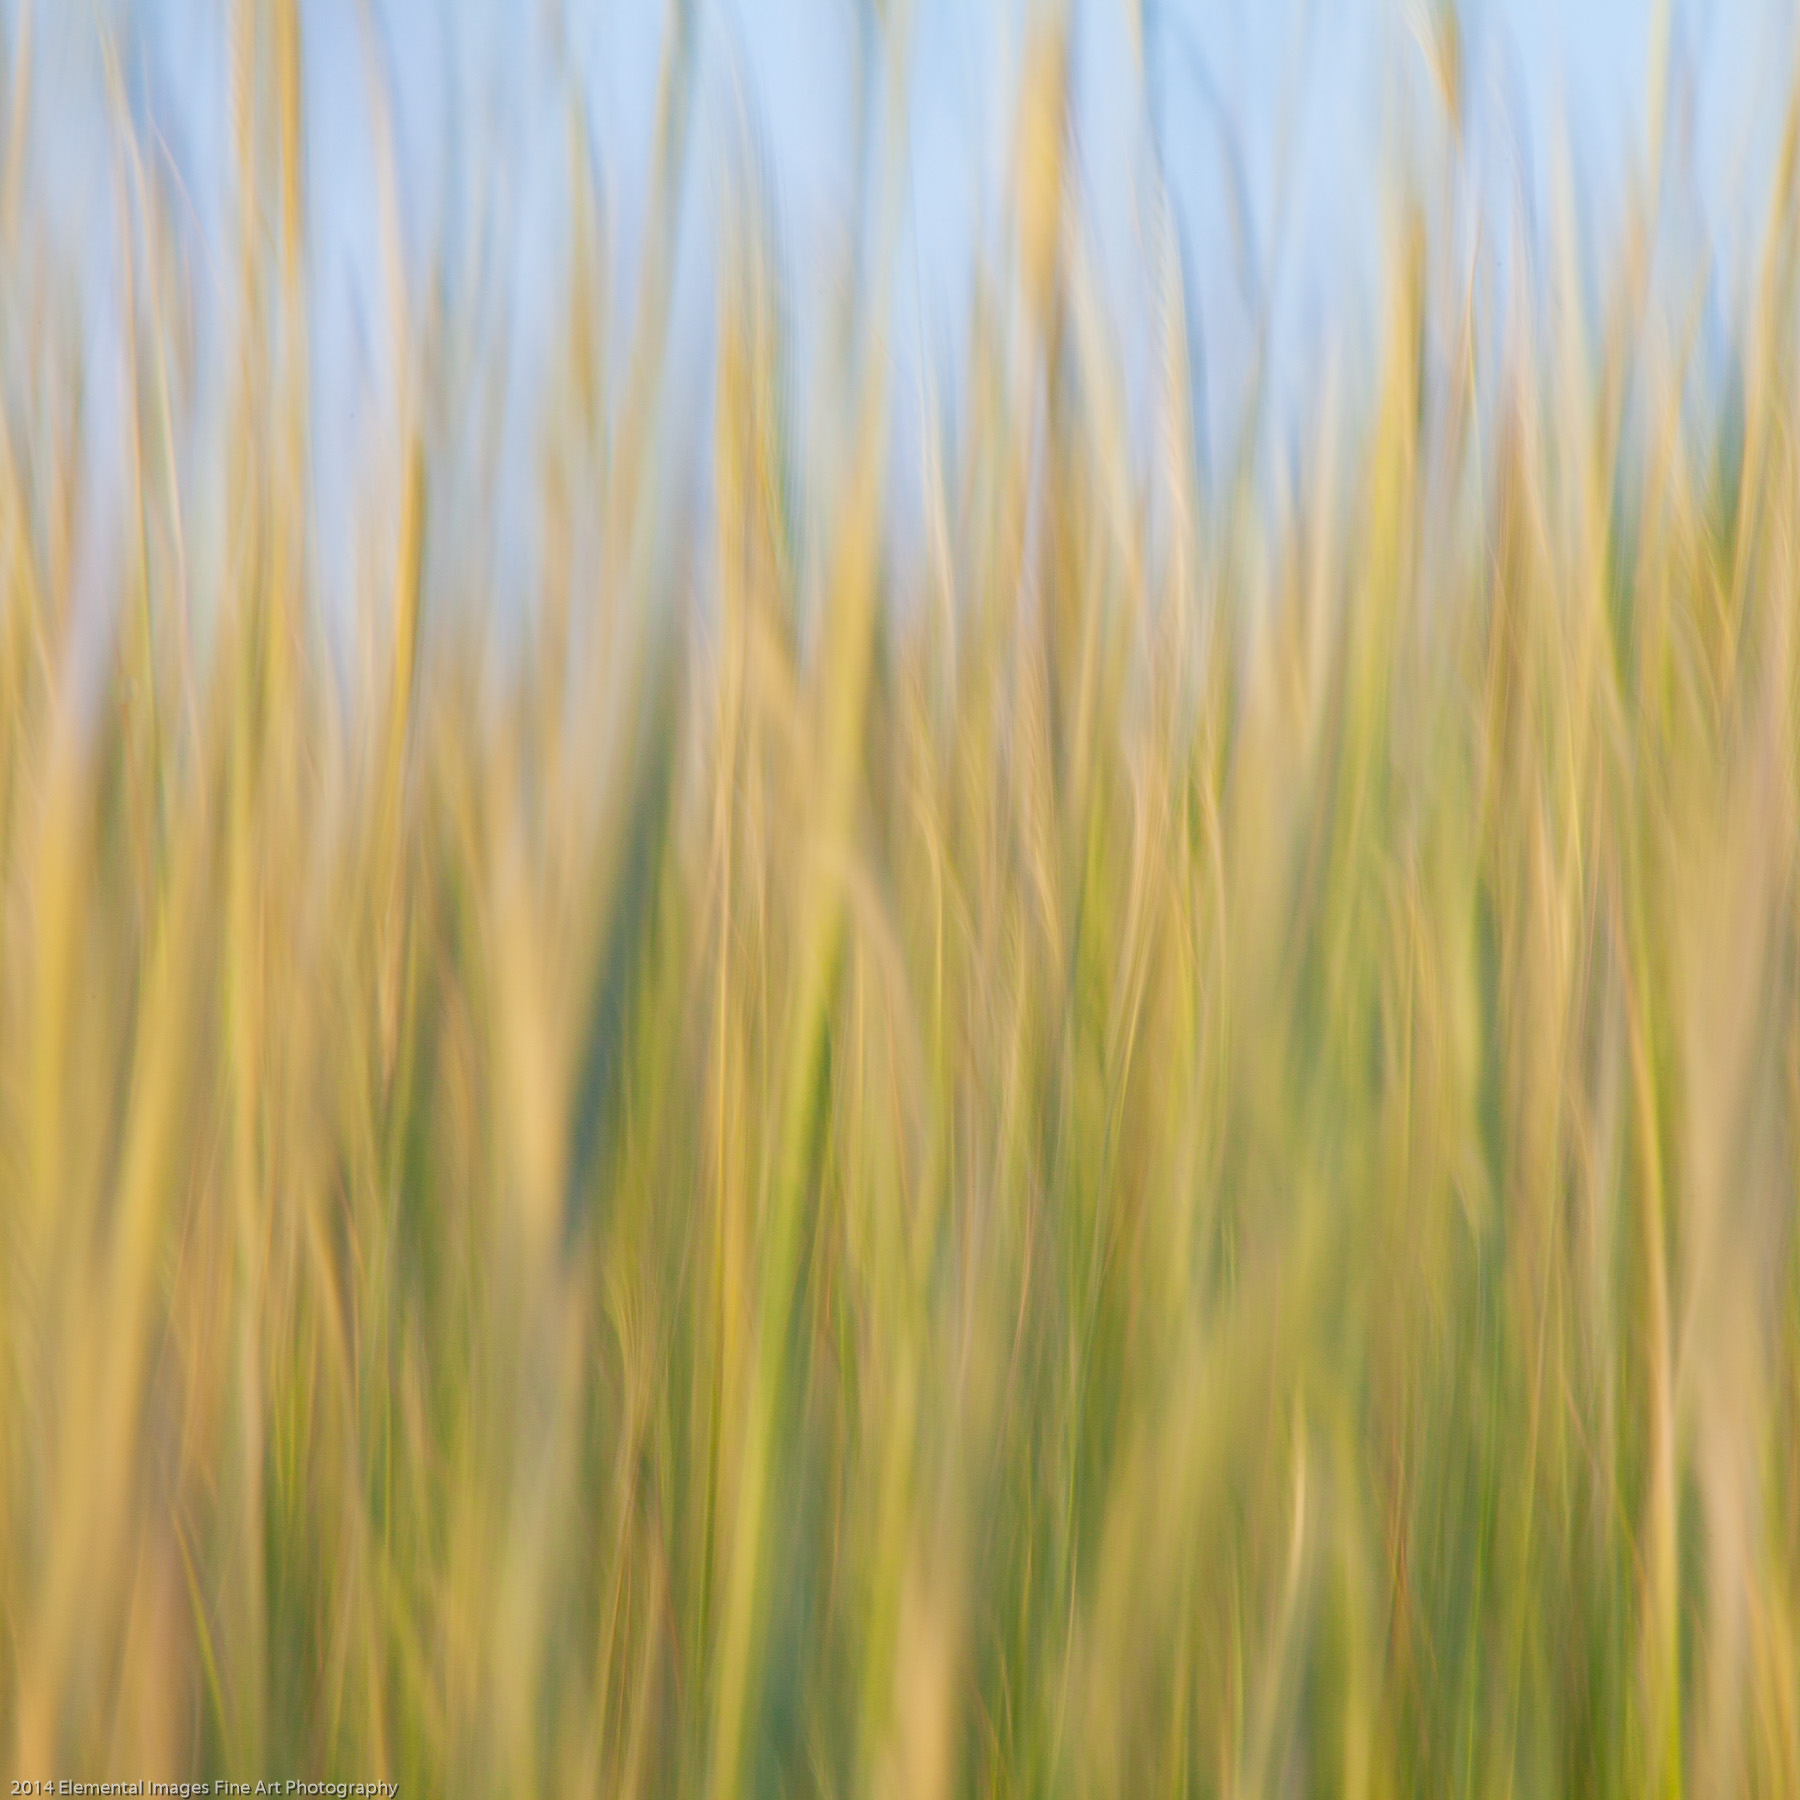 Grasses CI | The Palouse | WA | USA - © 2014 Elemental Images Fine Art Photography - All Rights Reserved Worldwide